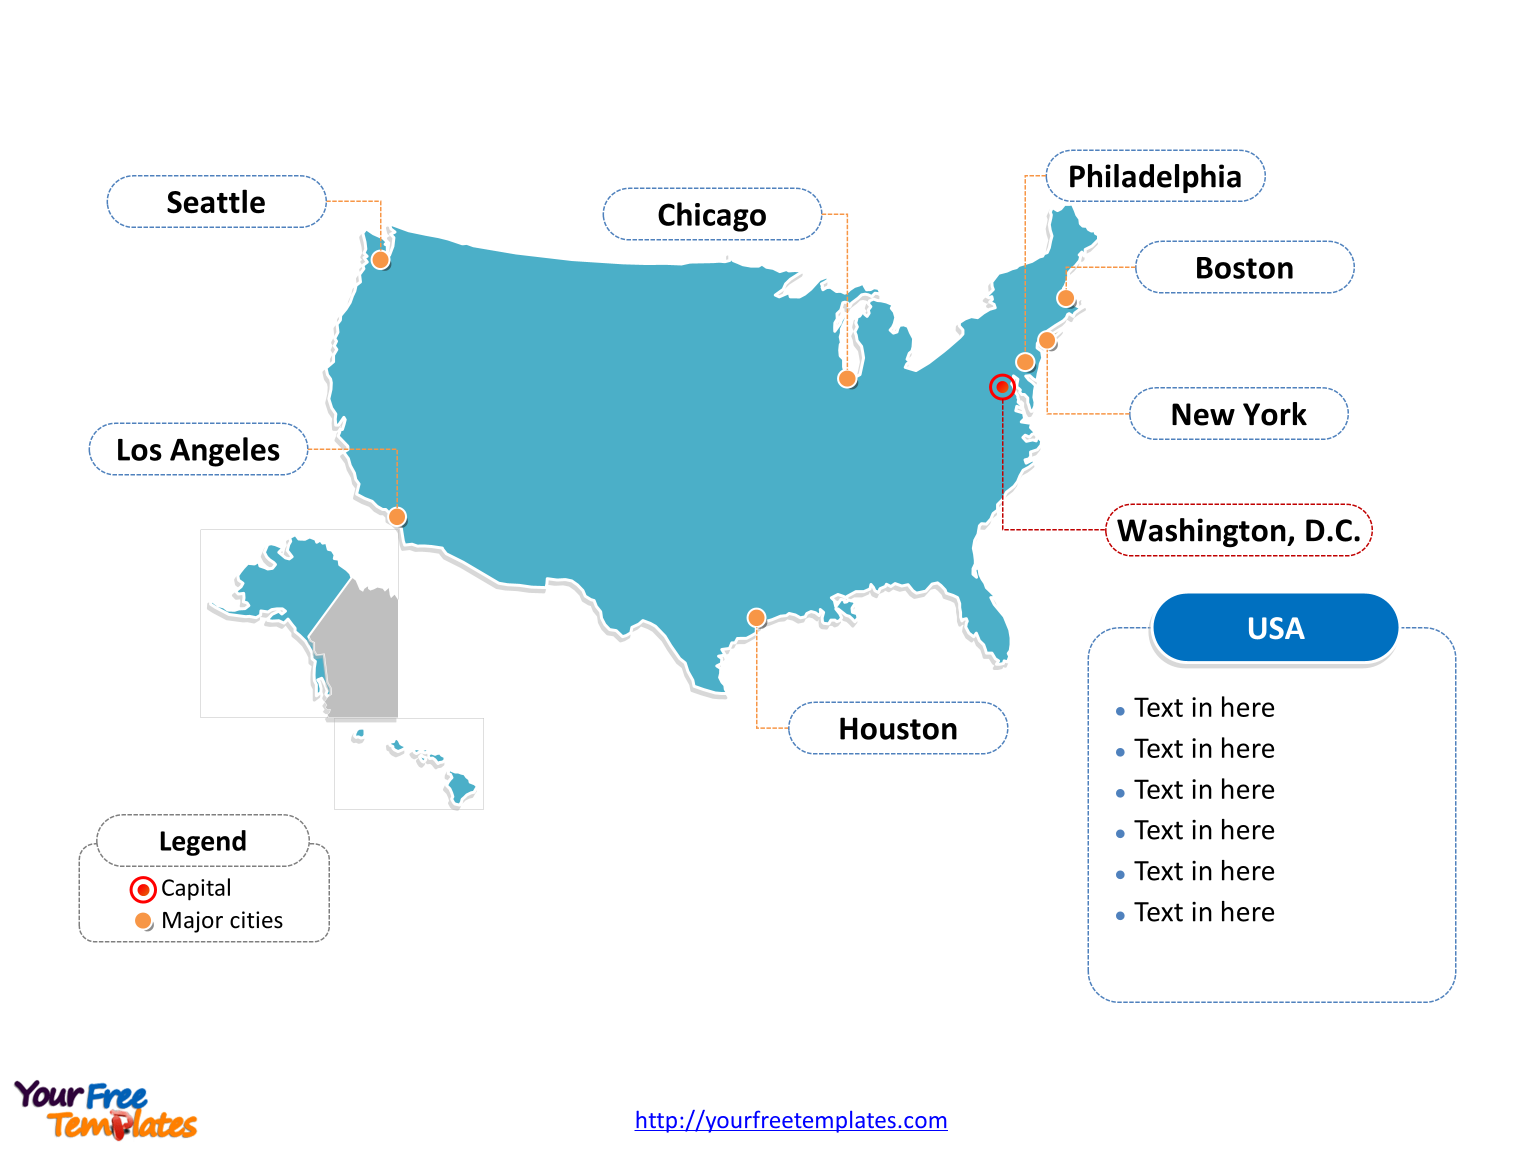 Free usa powerpoint map free powerpoint templates usa powerpoint map of outline labeled with cities toneelgroepblik Image collections